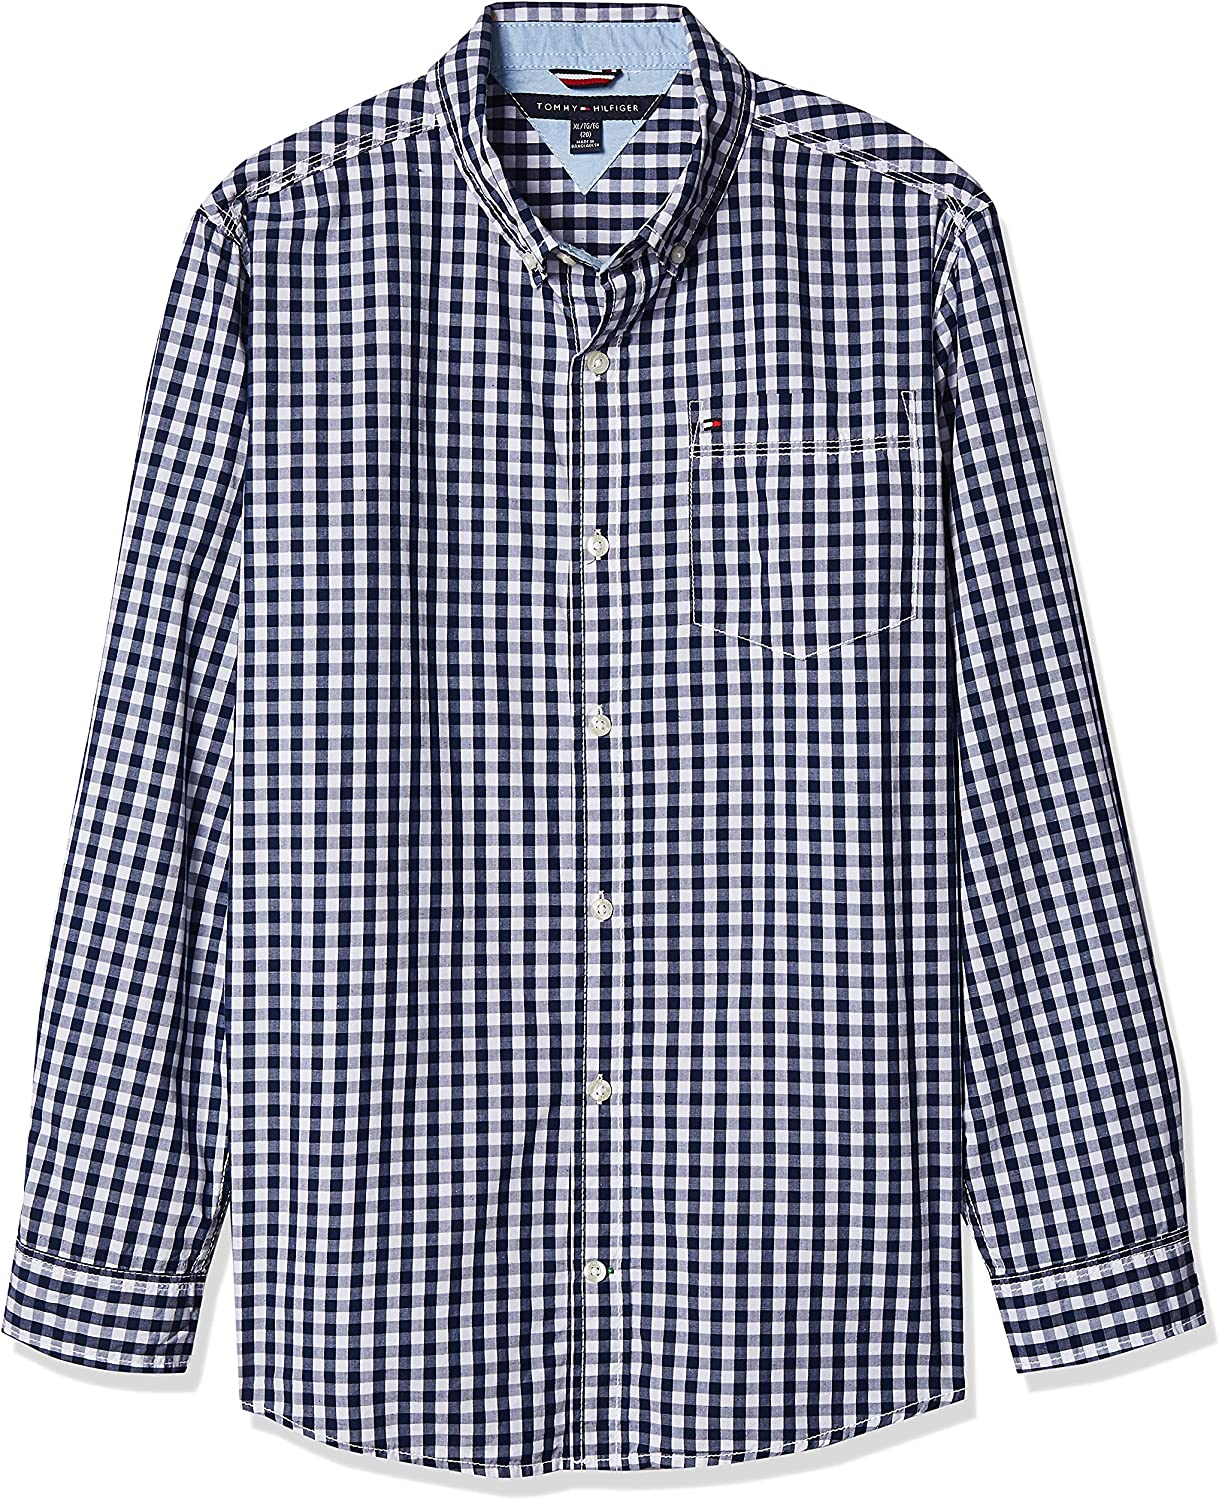 Tommy Hilfiger Boys Long Sleeve Woven Shirt, 100% Cotton, Collared Button-Down with Embroidered Logo